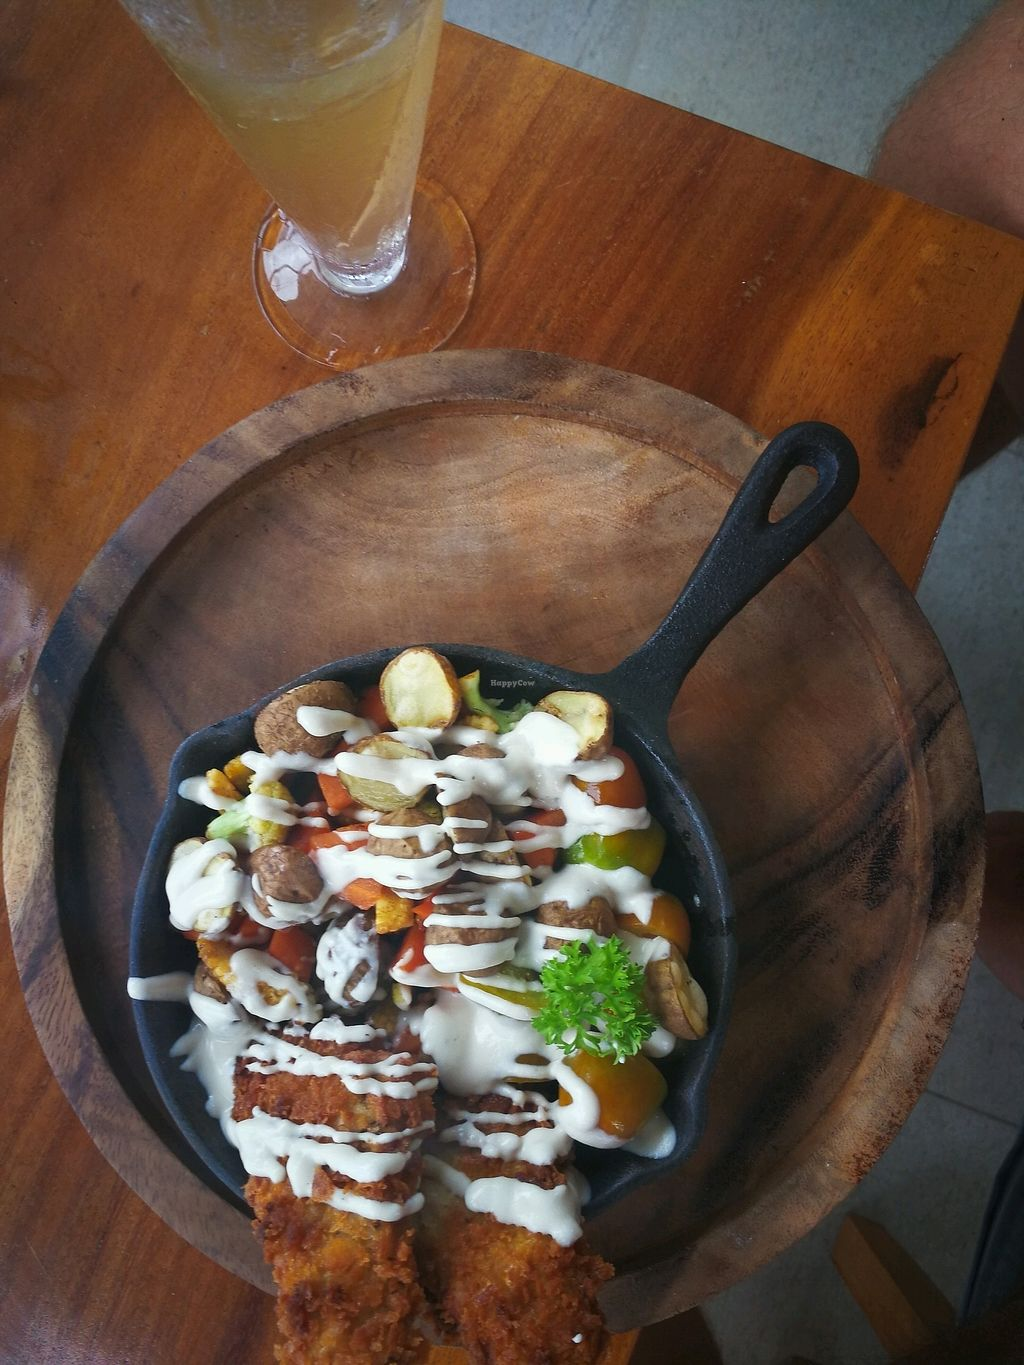 "Photo of Living Kitchen Bali  by <a href=""/members/profile/kiniasia"">kiniasia</a> <br/>tempeh maryland <br/> November 8, 2017  - <a href='/contact/abuse/image/100972/323200'>Report</a>"